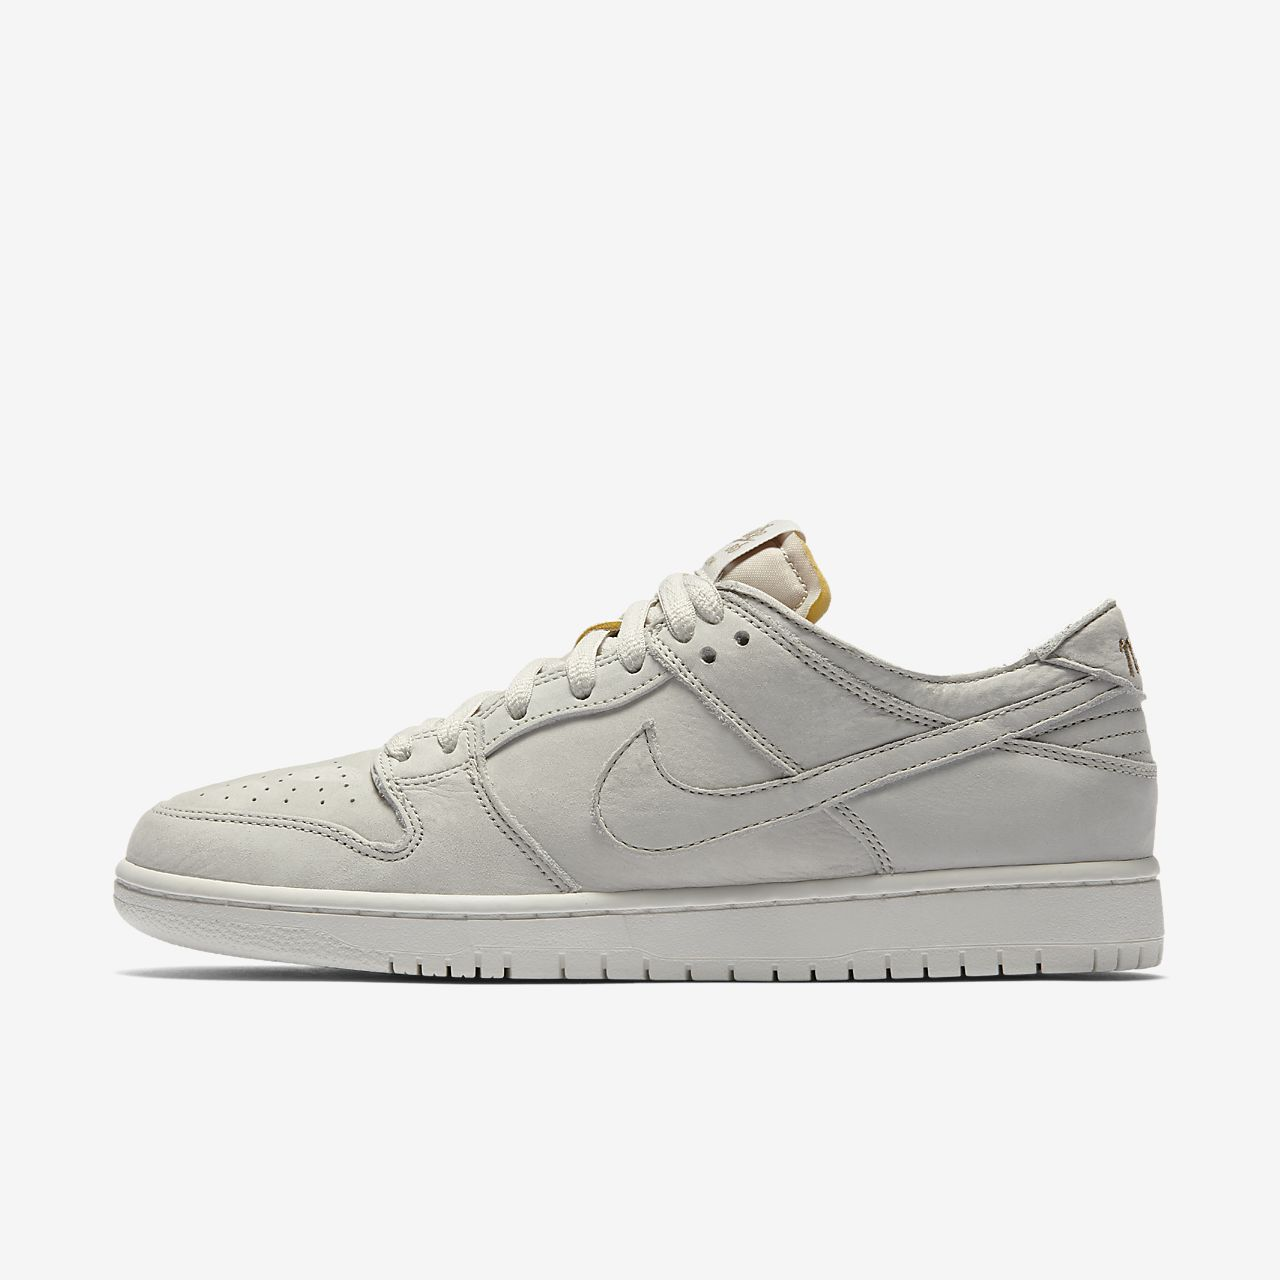 nike sb dunk low homme prix